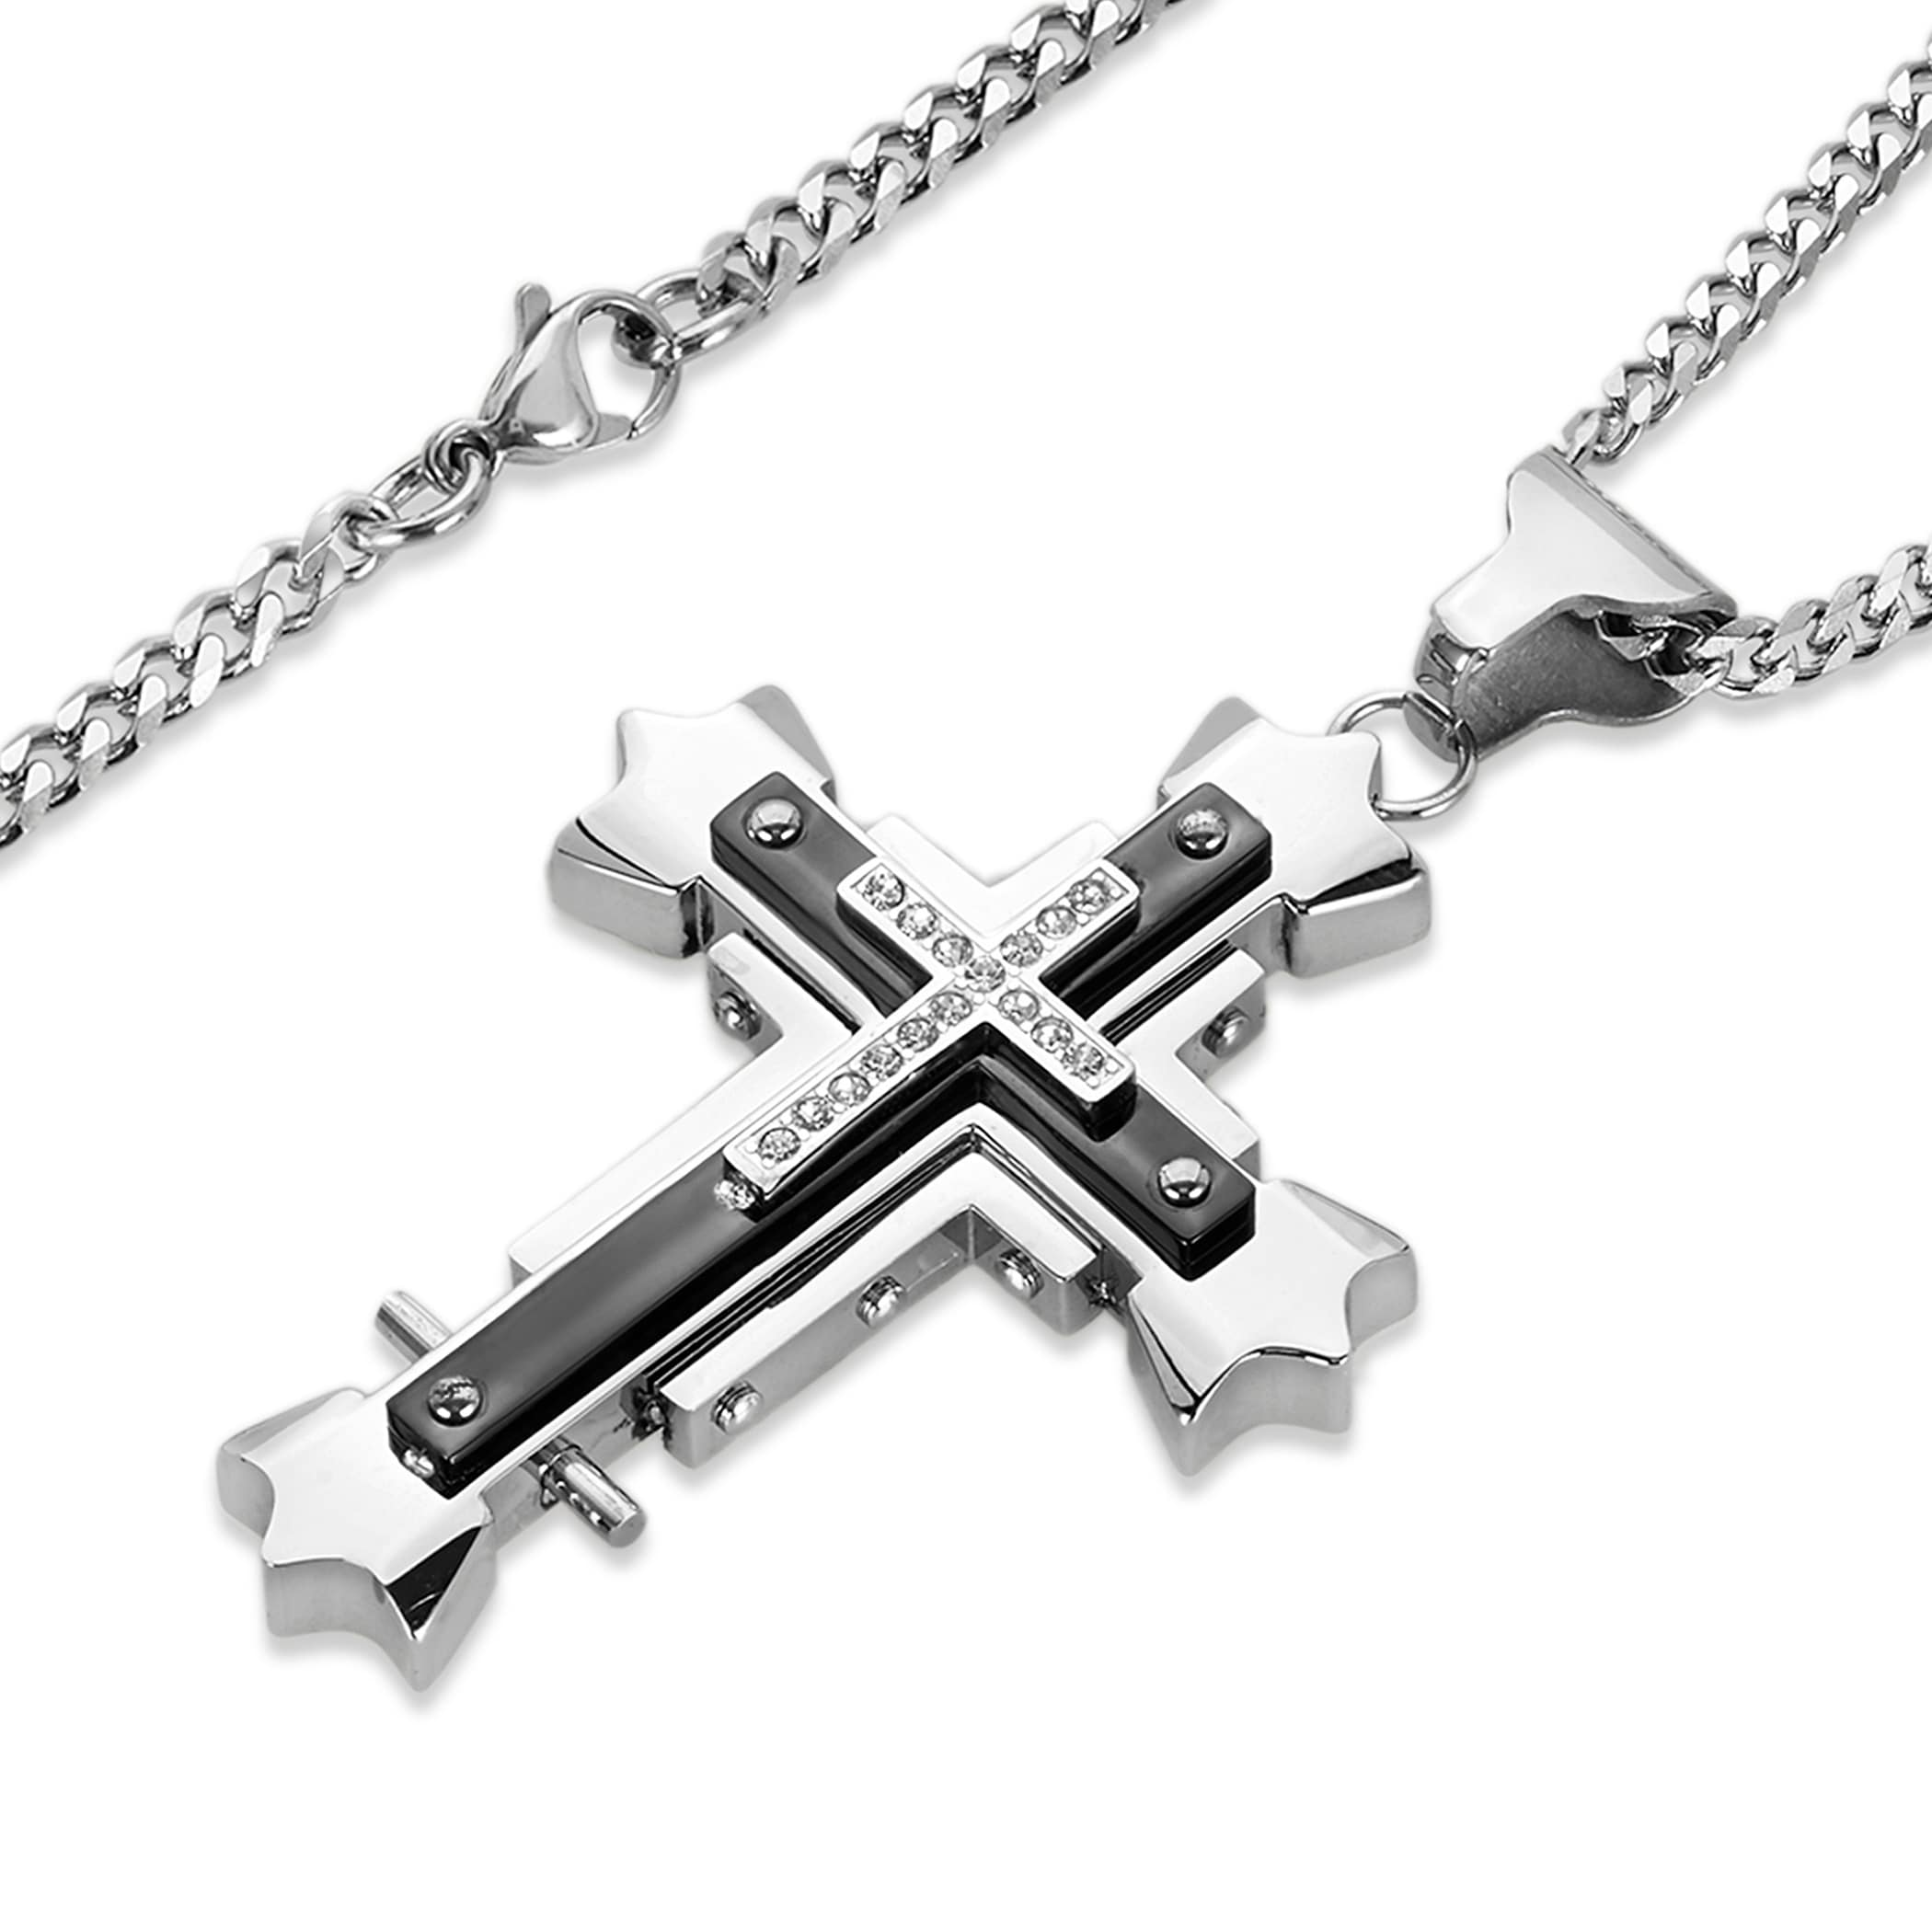 Shop mens cubic zirconia high polish stainless steel cross necklace shop mens cubic zirconia high polish stainless steel cross necklace blackwhite on sale free shipping on orders over 45 overstock 7110715 aloadofball Images